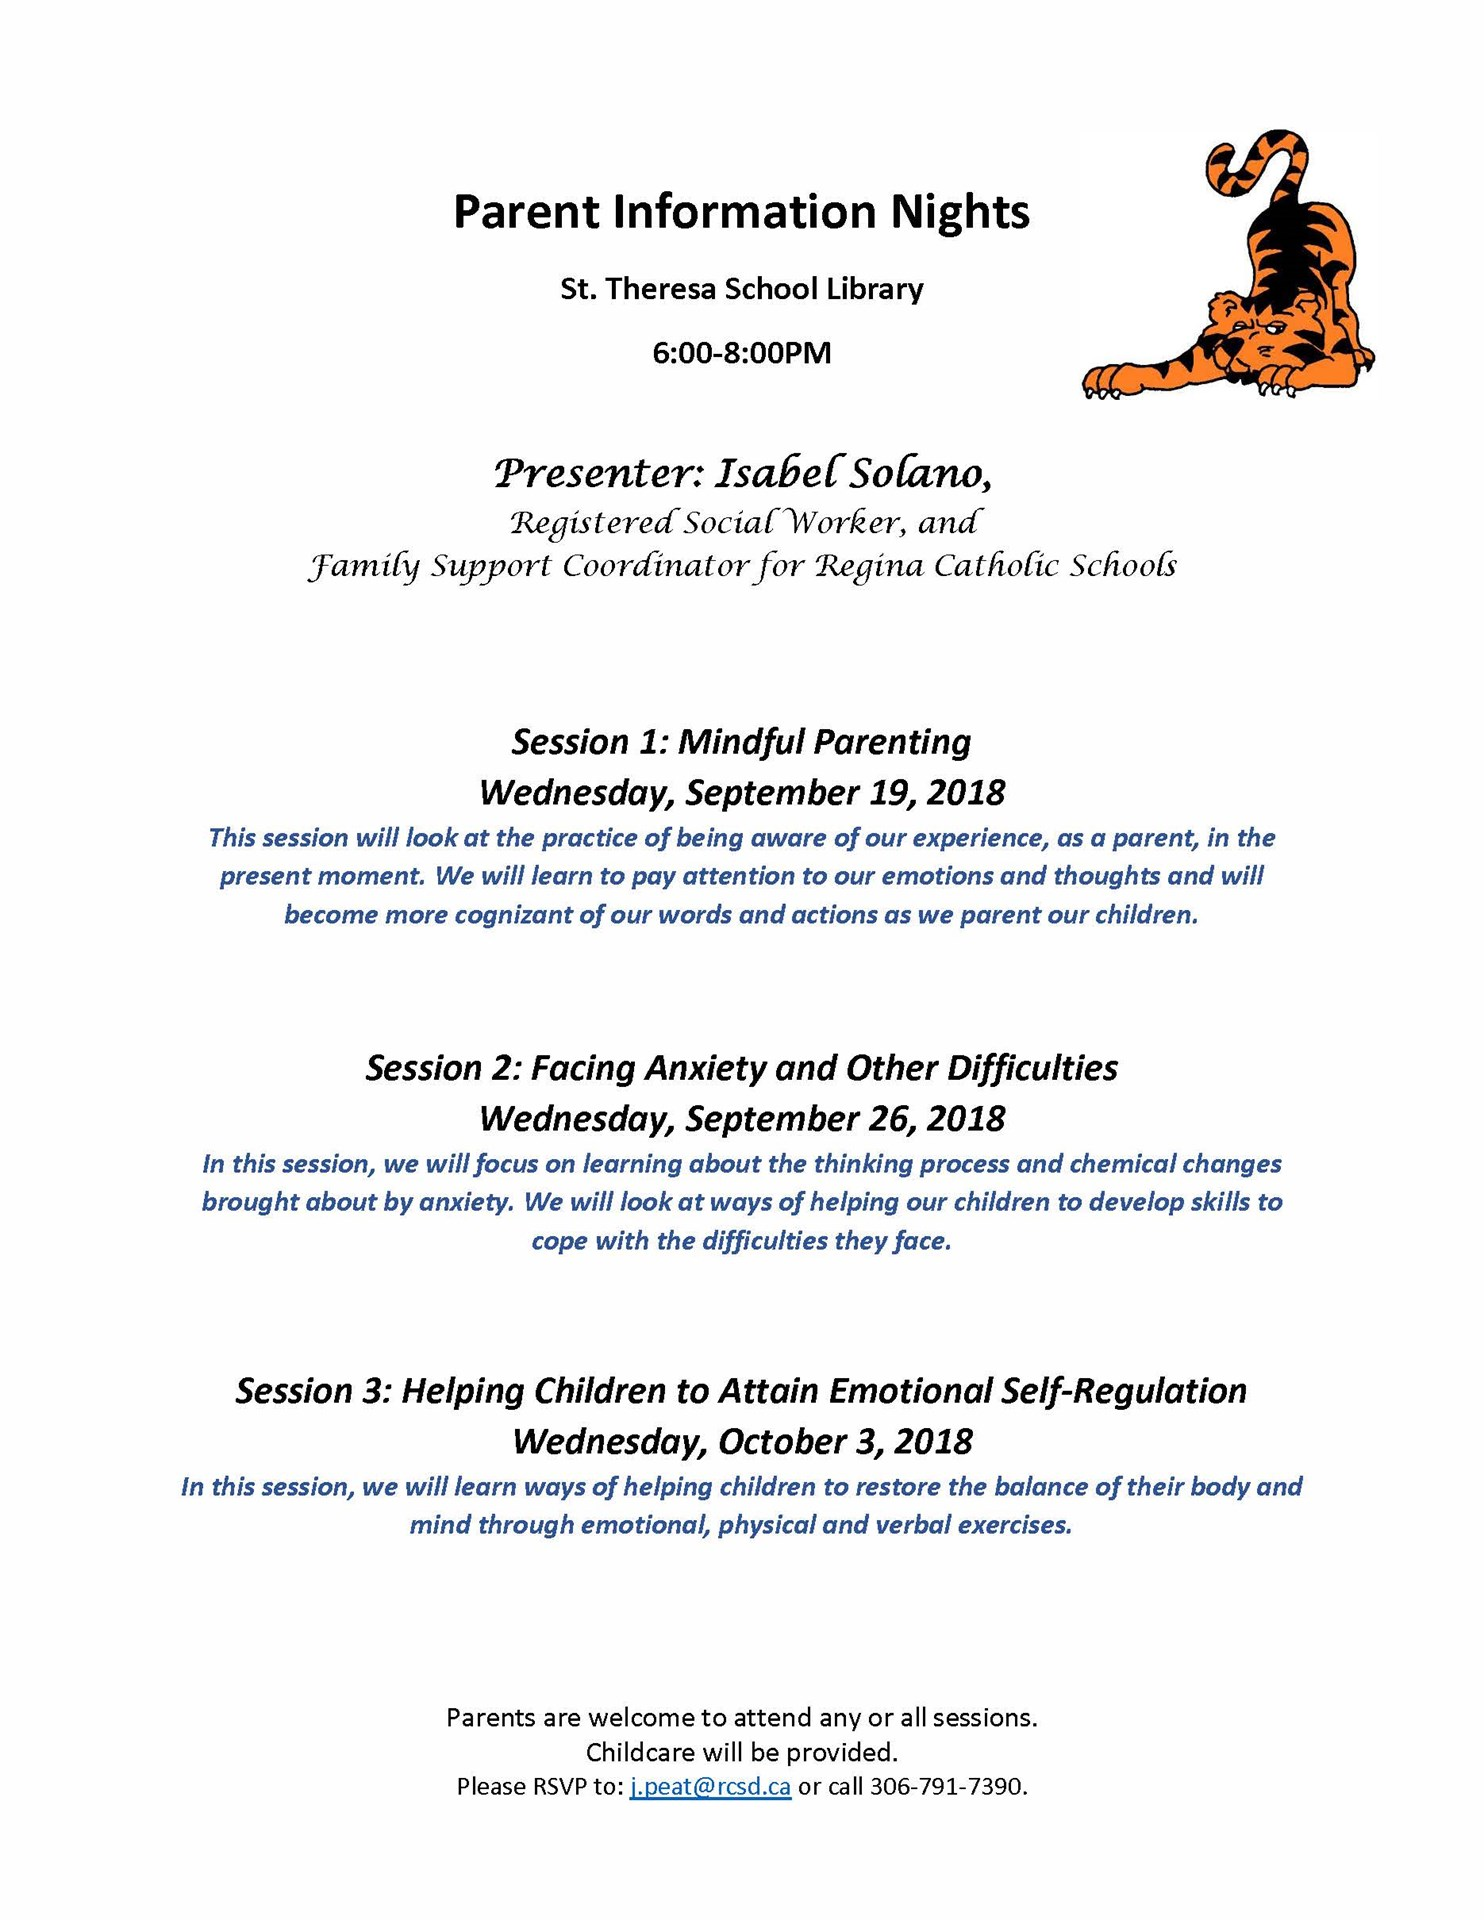 Parent Information Nights with Isabel Solano 2018.jpg